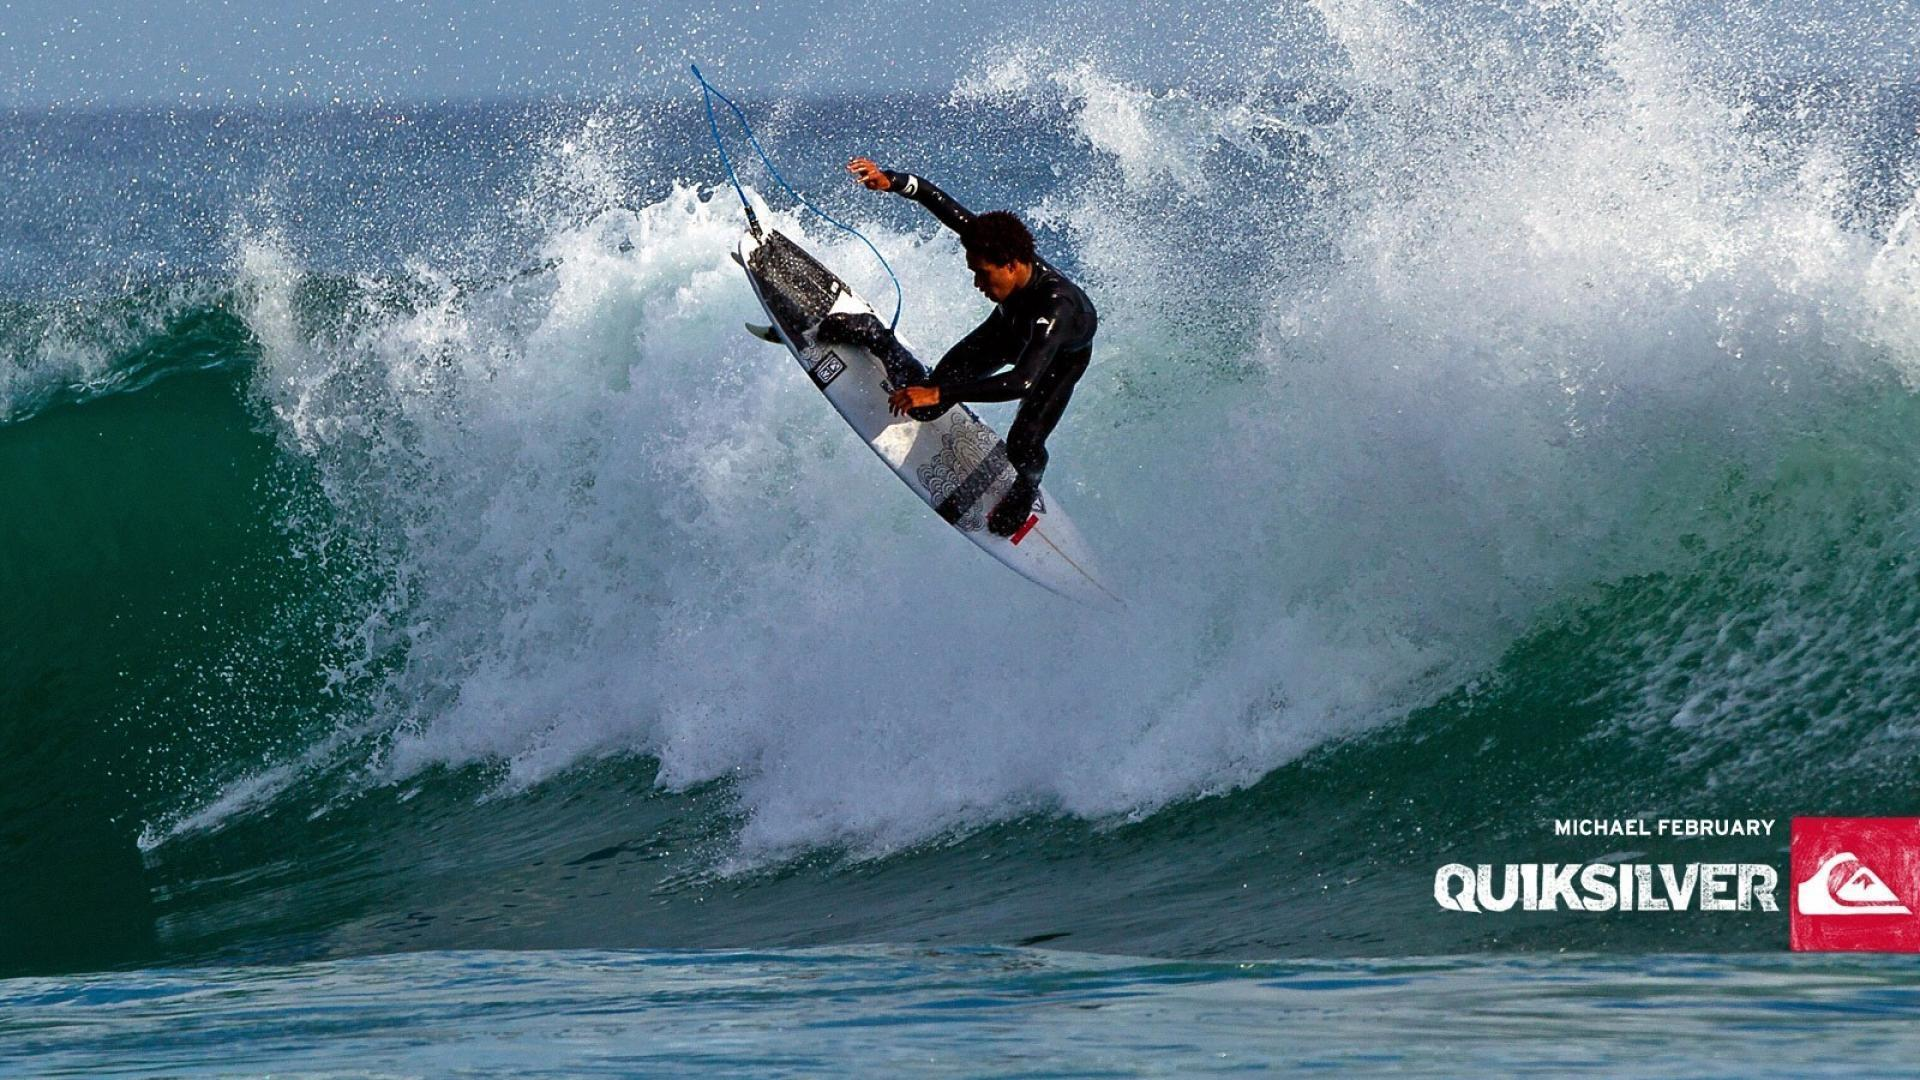 Waves surfing quiksilver wallpaper | (35586)